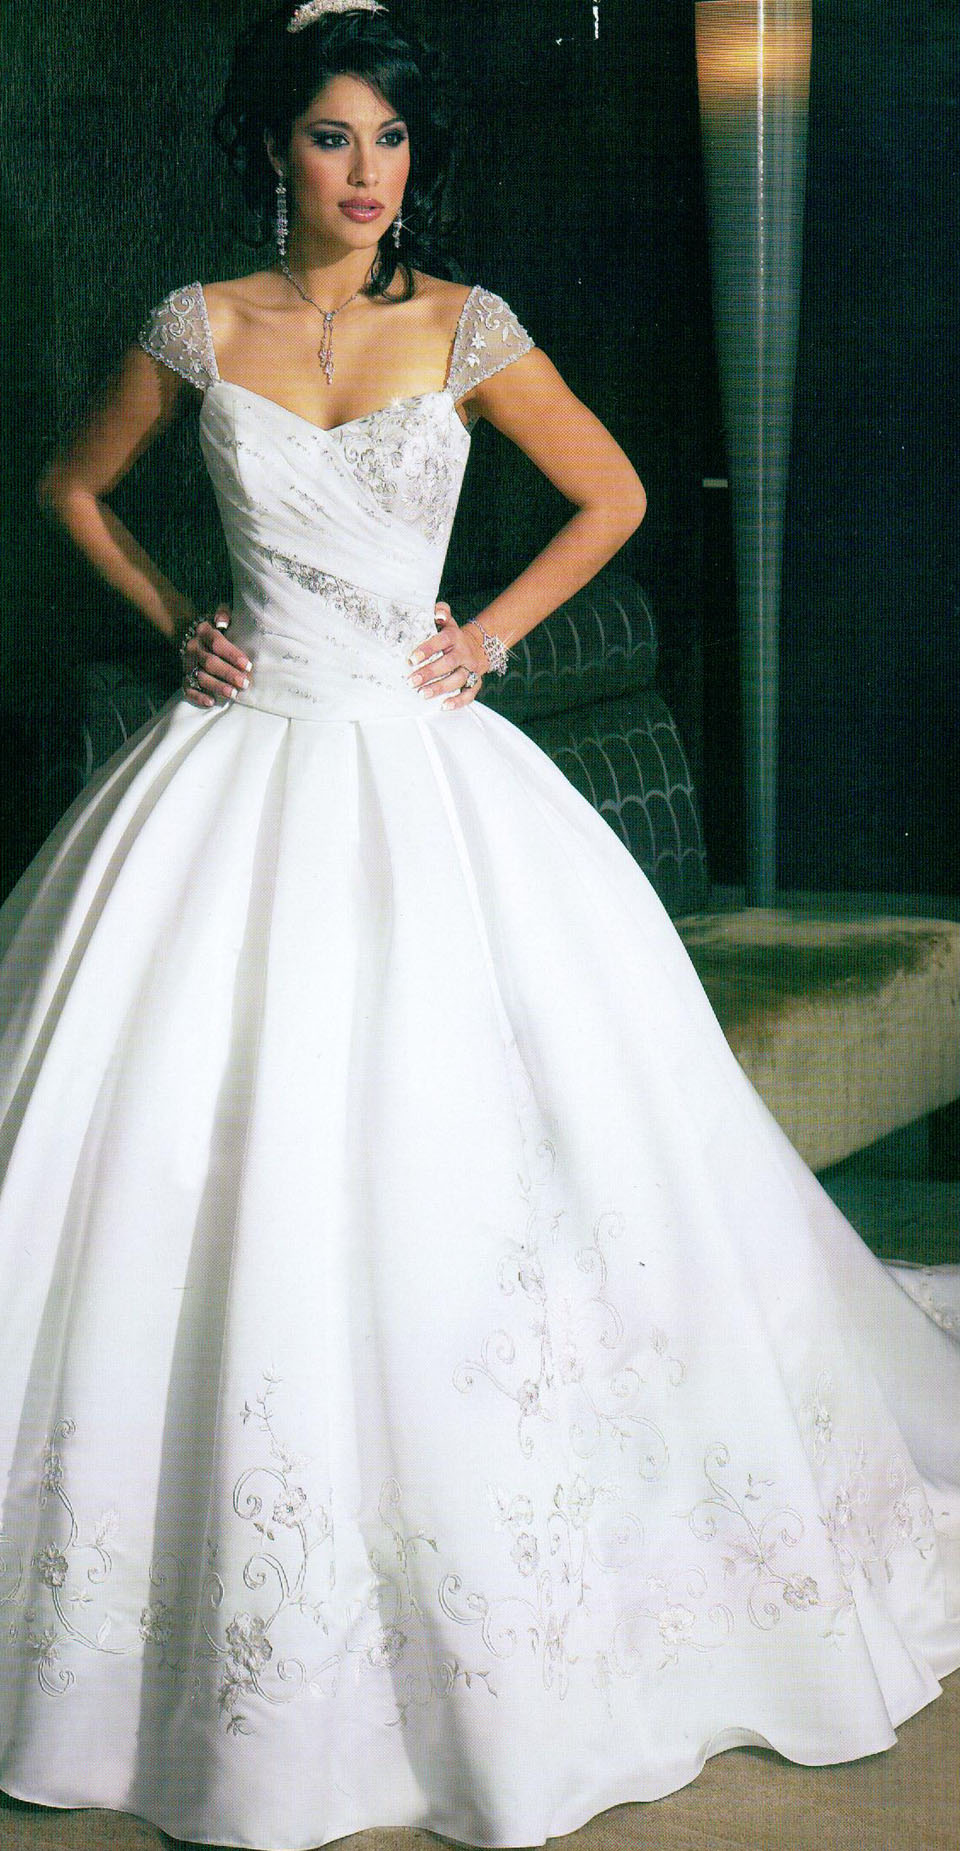 Wedding Gown Rental Las Vegas Nv